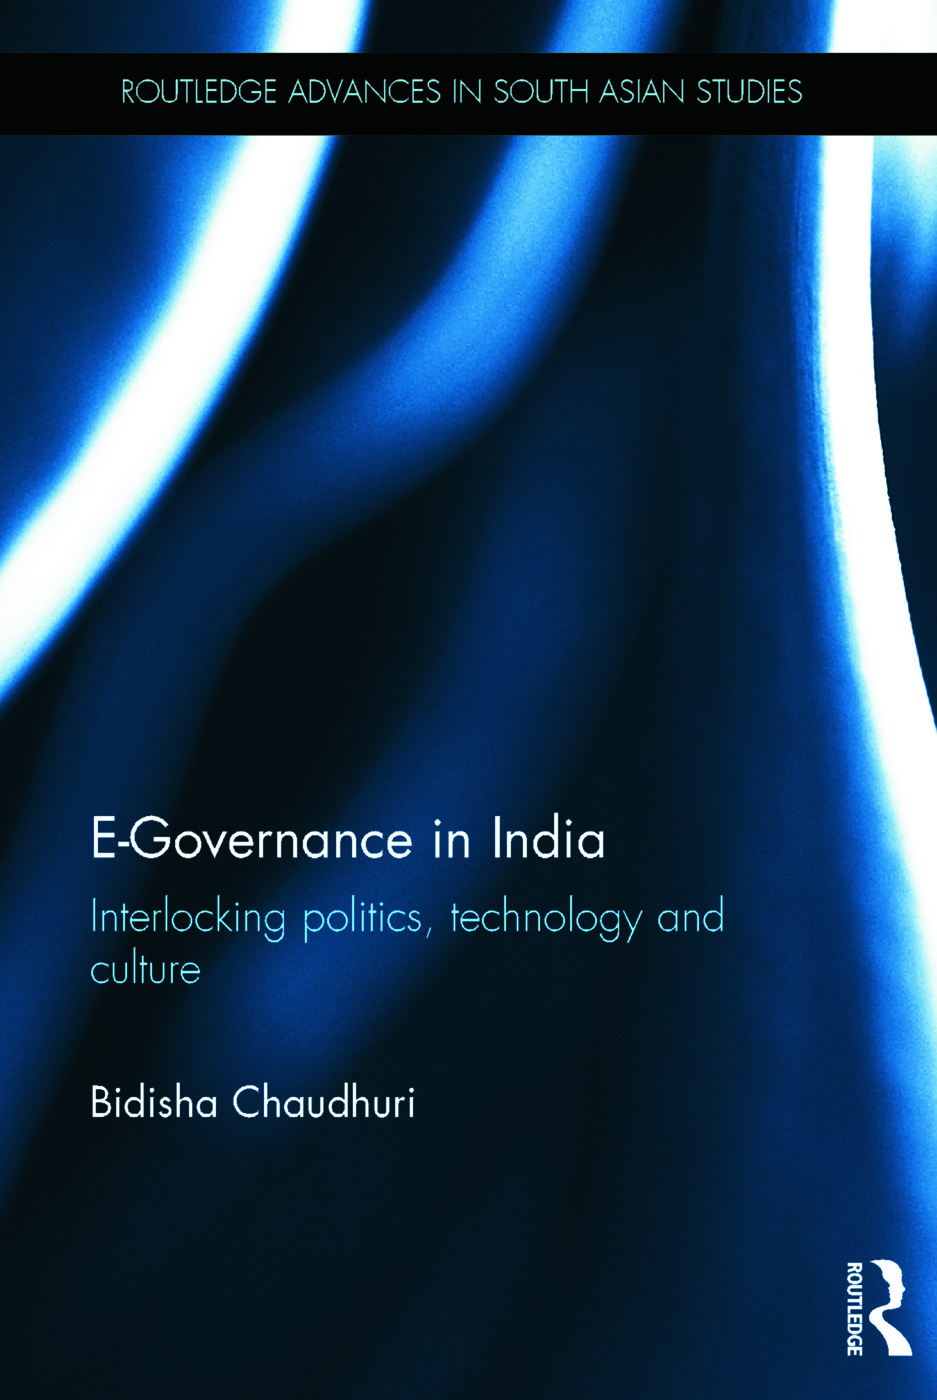 E-Governance in India: Interlocking politics, technology and culture book cover